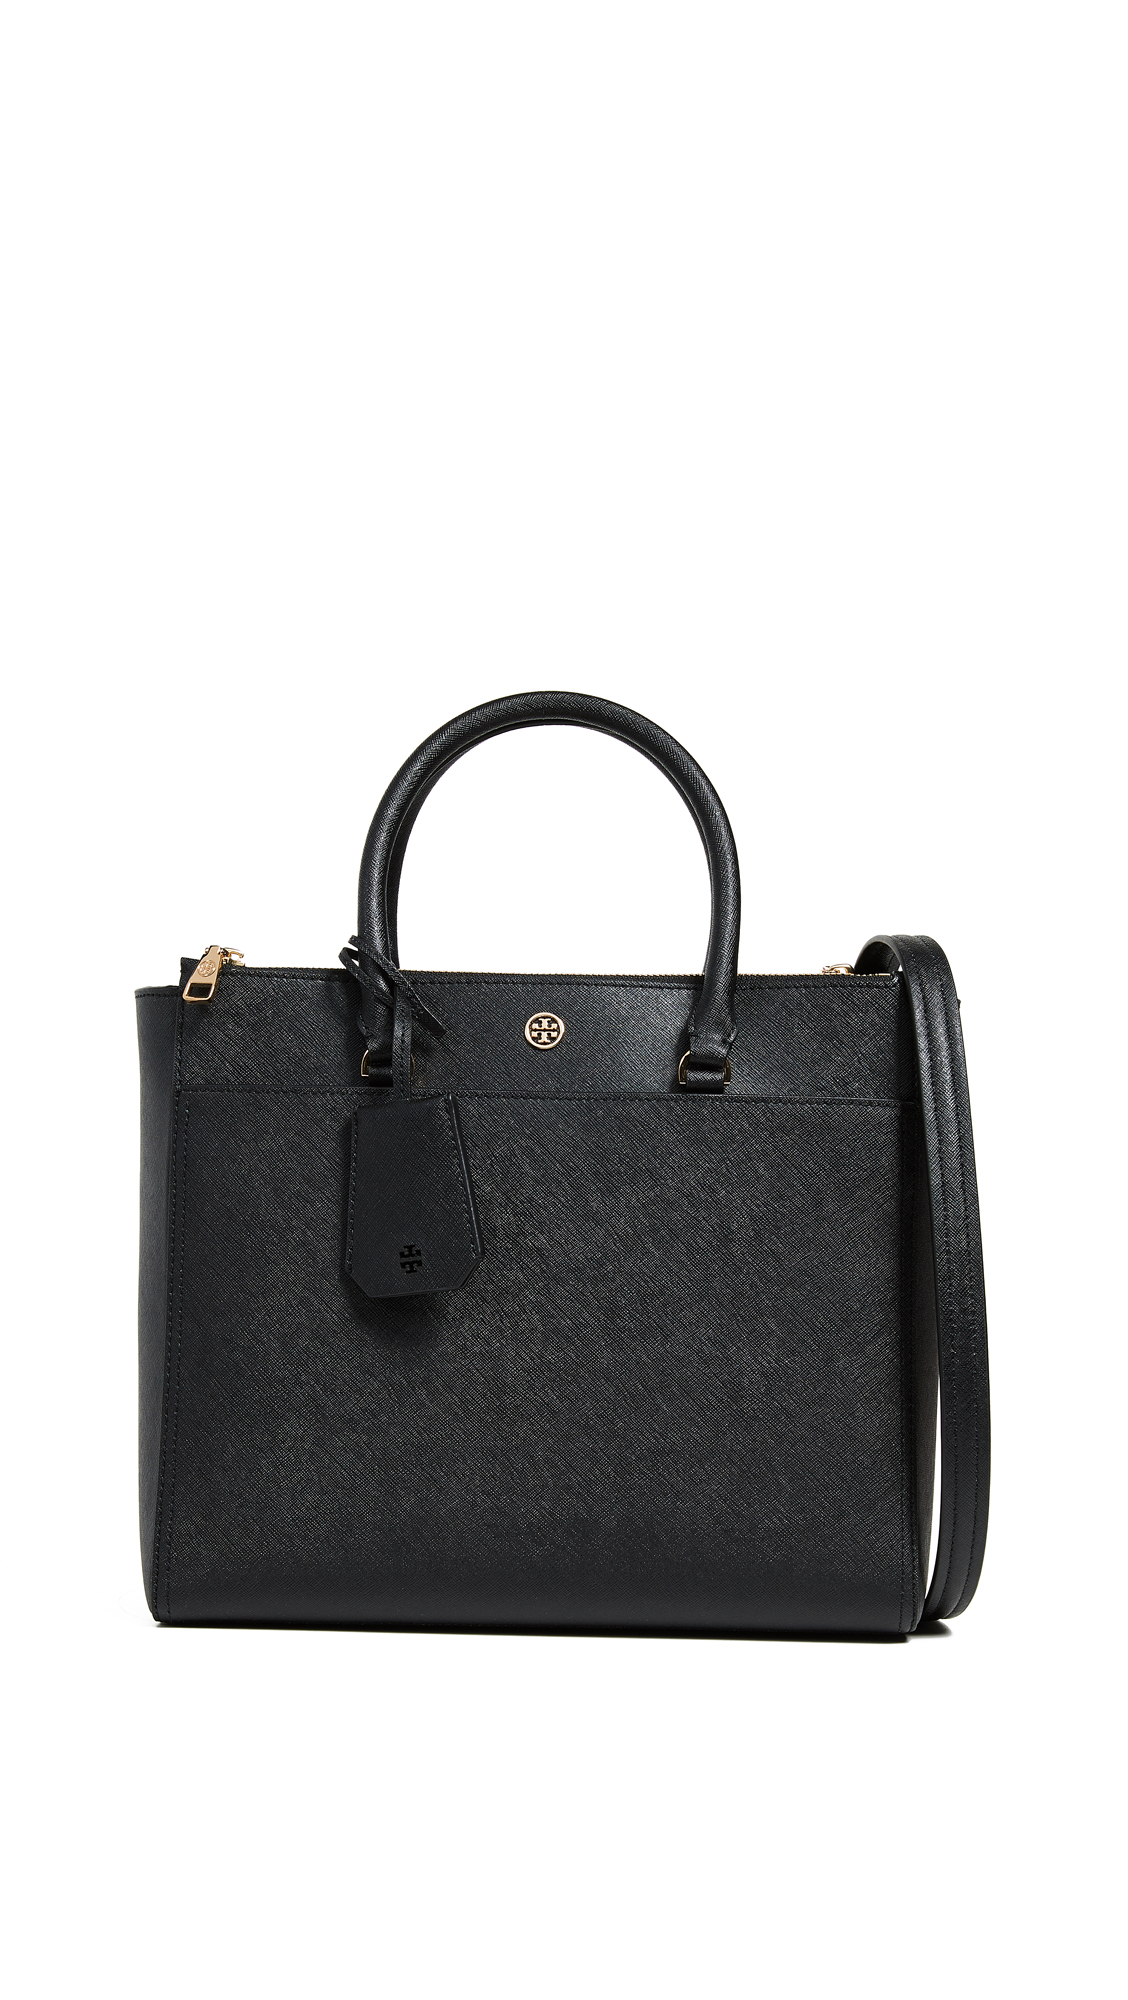 a6c74f476a Tory Burch Robinson Double Zip Tote Bag In Black/Royal Navy | ModeSens